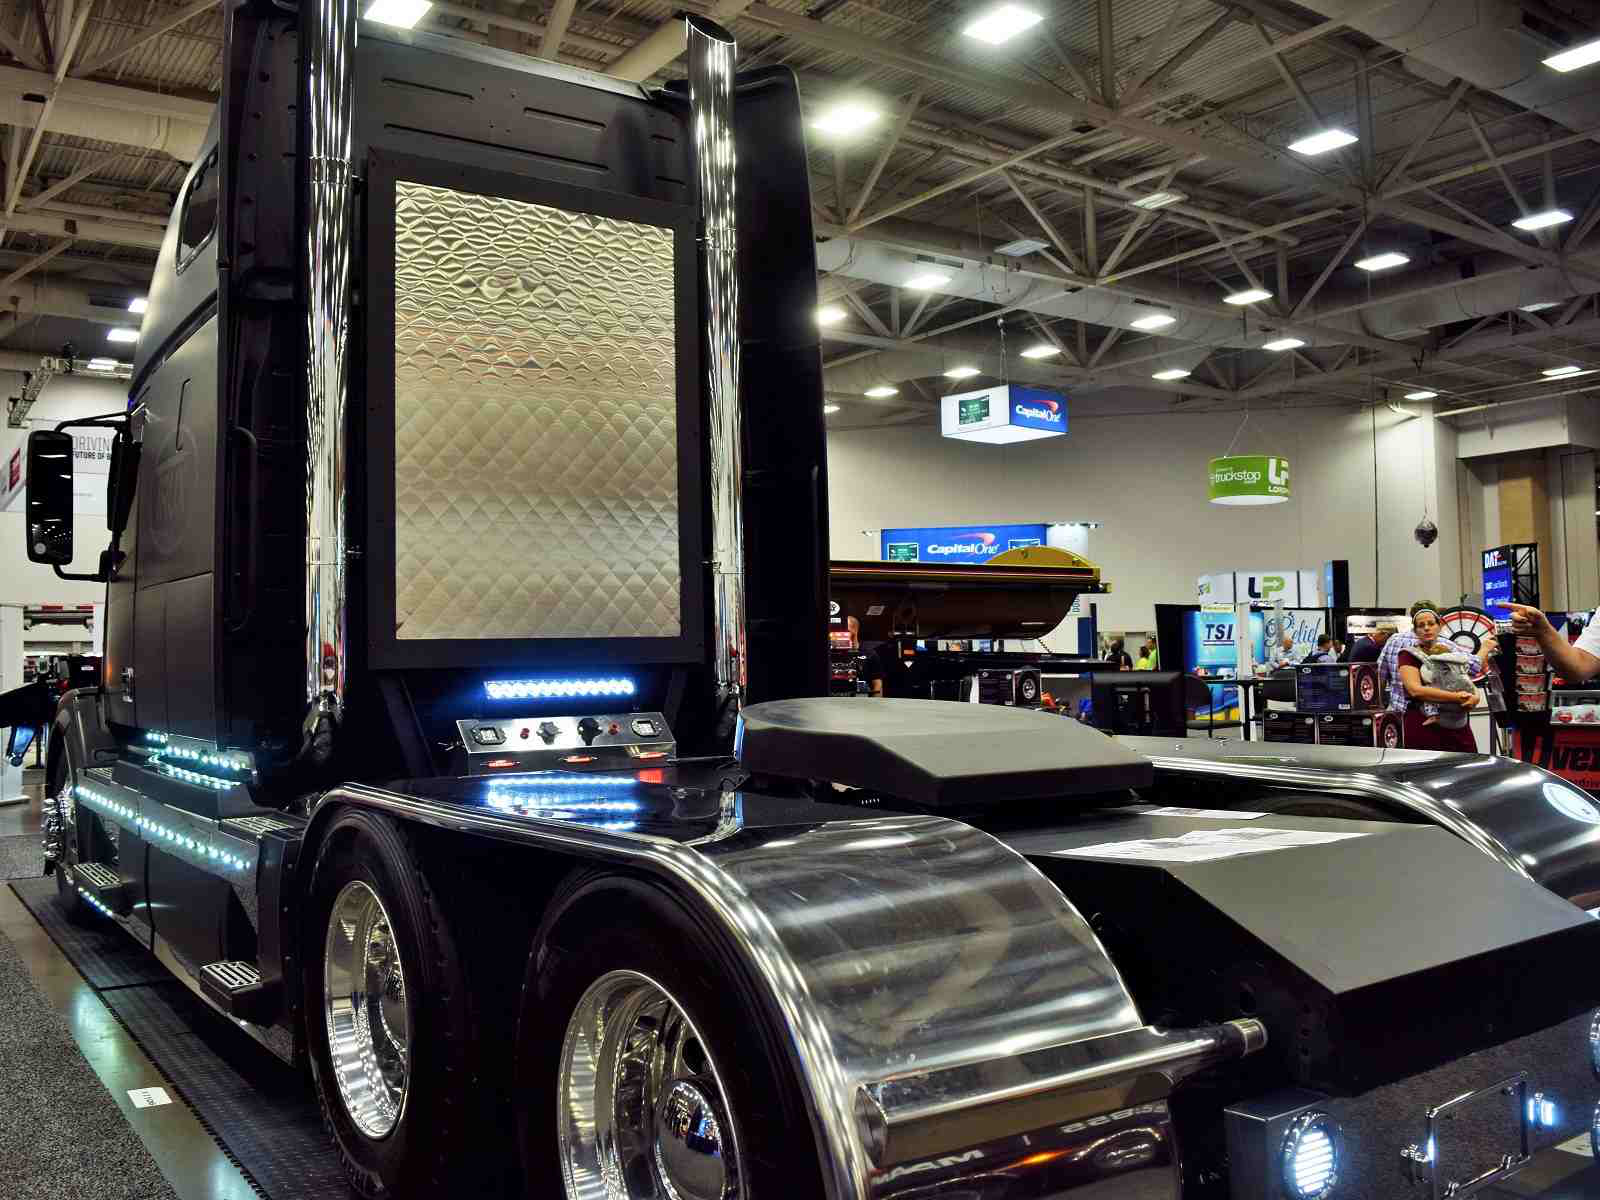 Volvo fans, this one's for you: Trux' custom '06 VNL 670